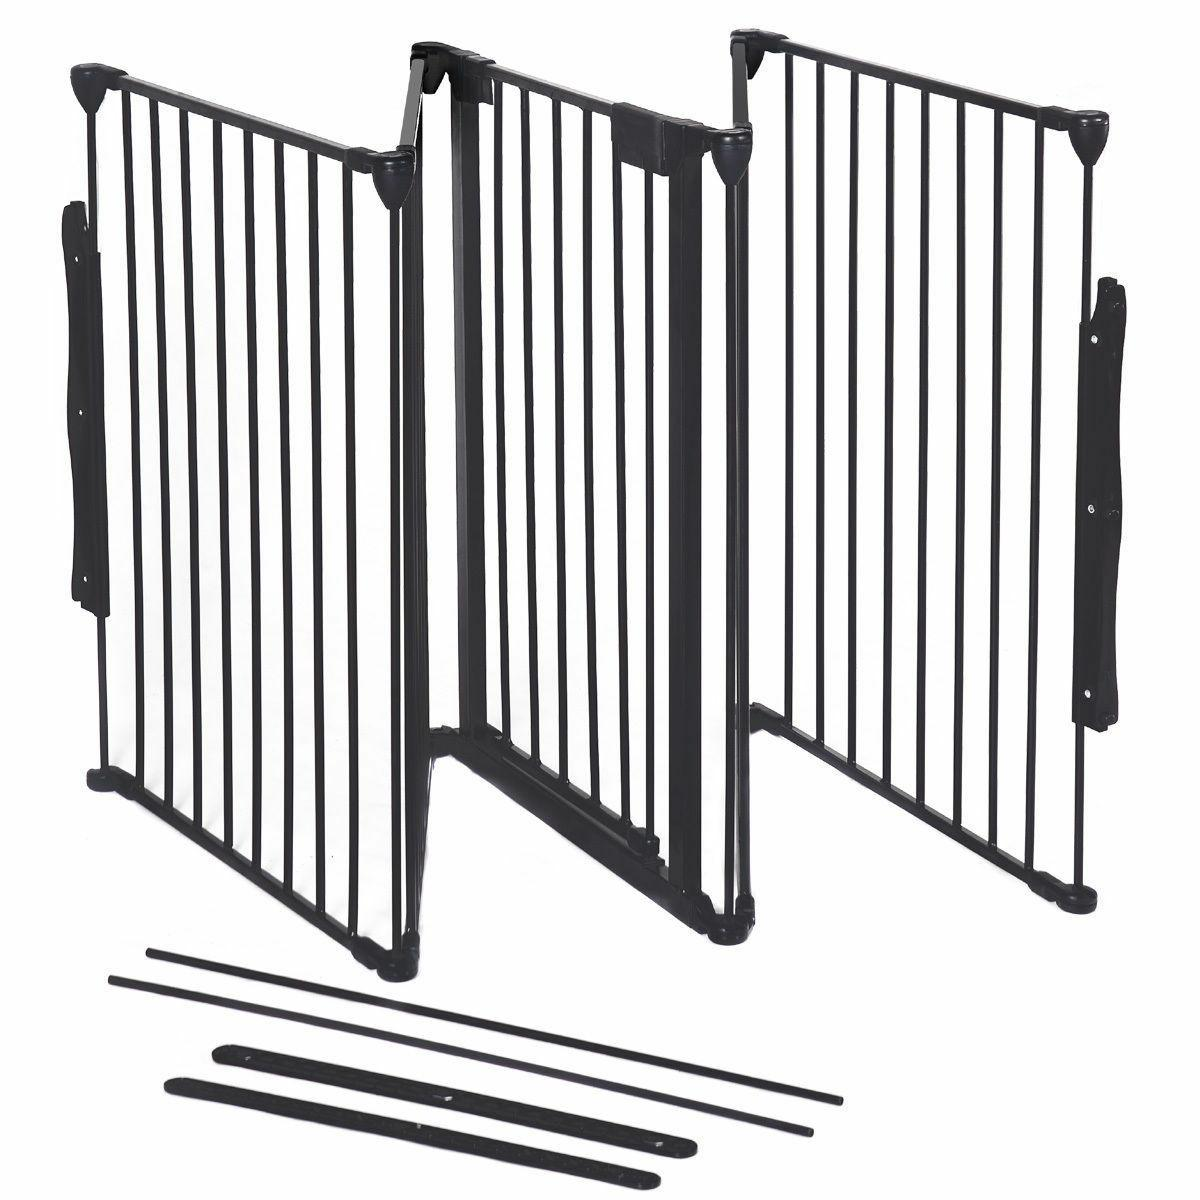 Fireplace Fence Baby Fence Metal Fire Gate Pet Dog Cat